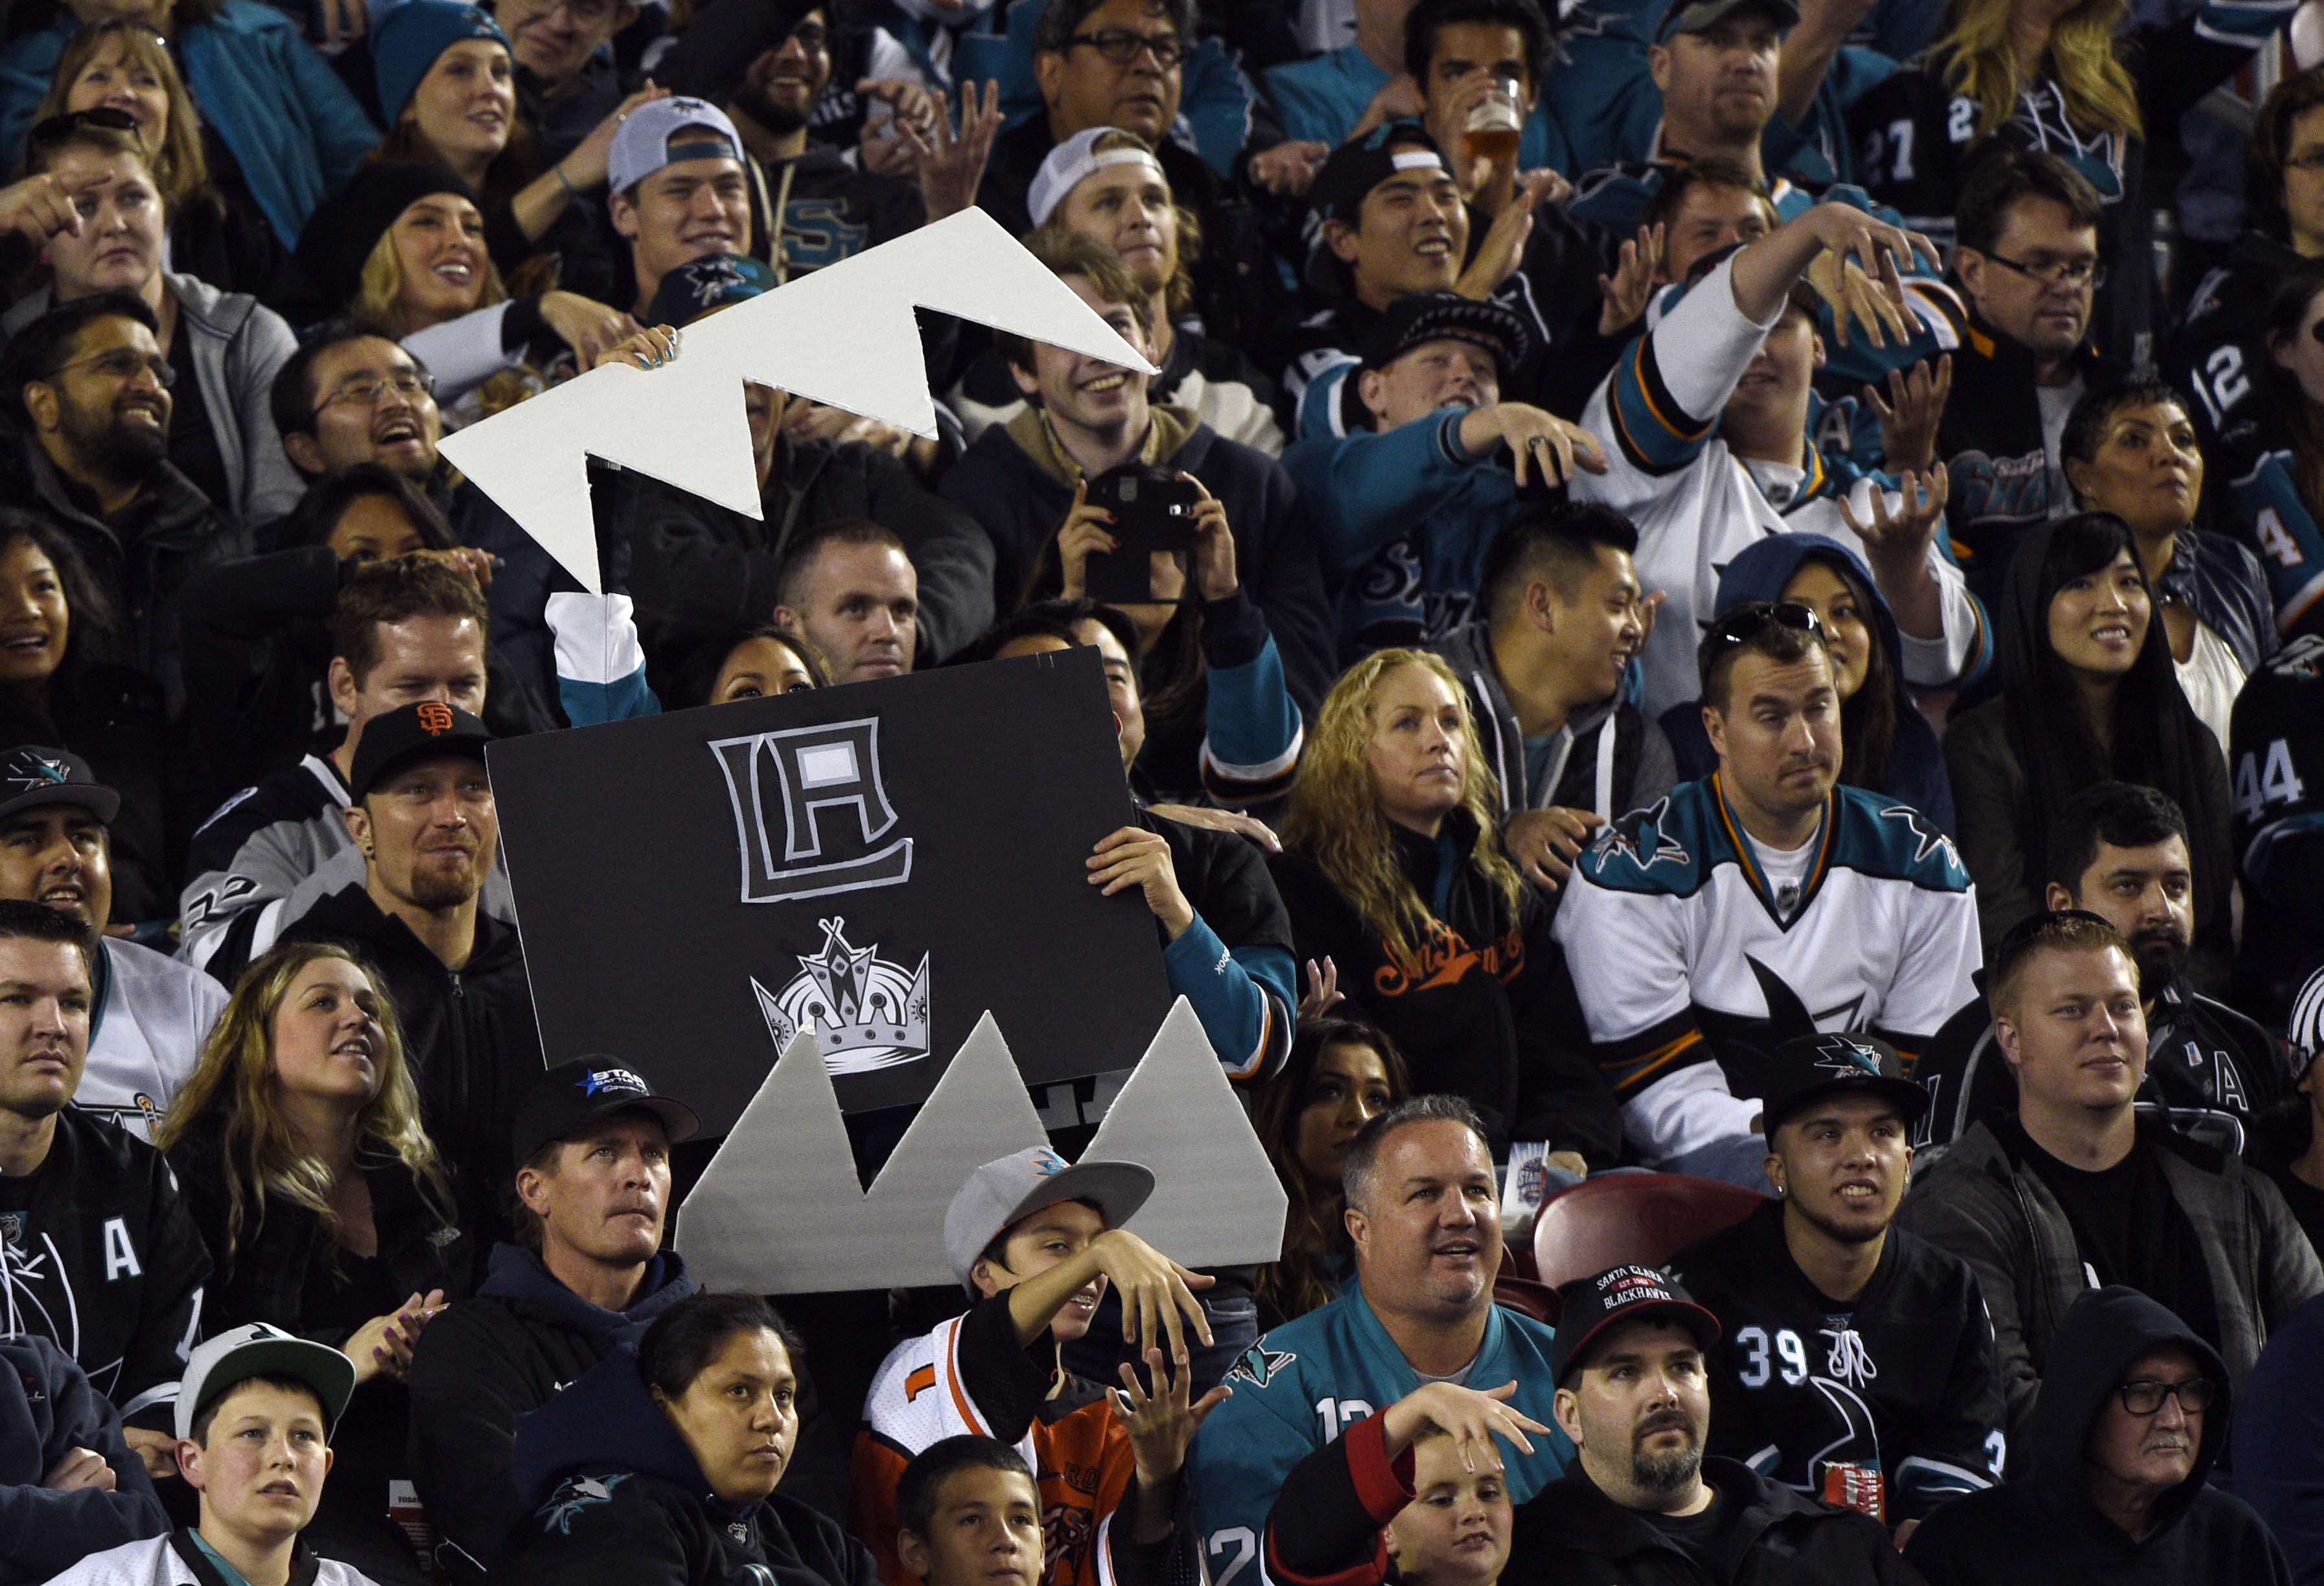 sharks kings dating commercial Pavelski's 2 goals lead sharks past kings in giving up seven goals in a 69-minute span dating to that any commercial use or distribution without the.